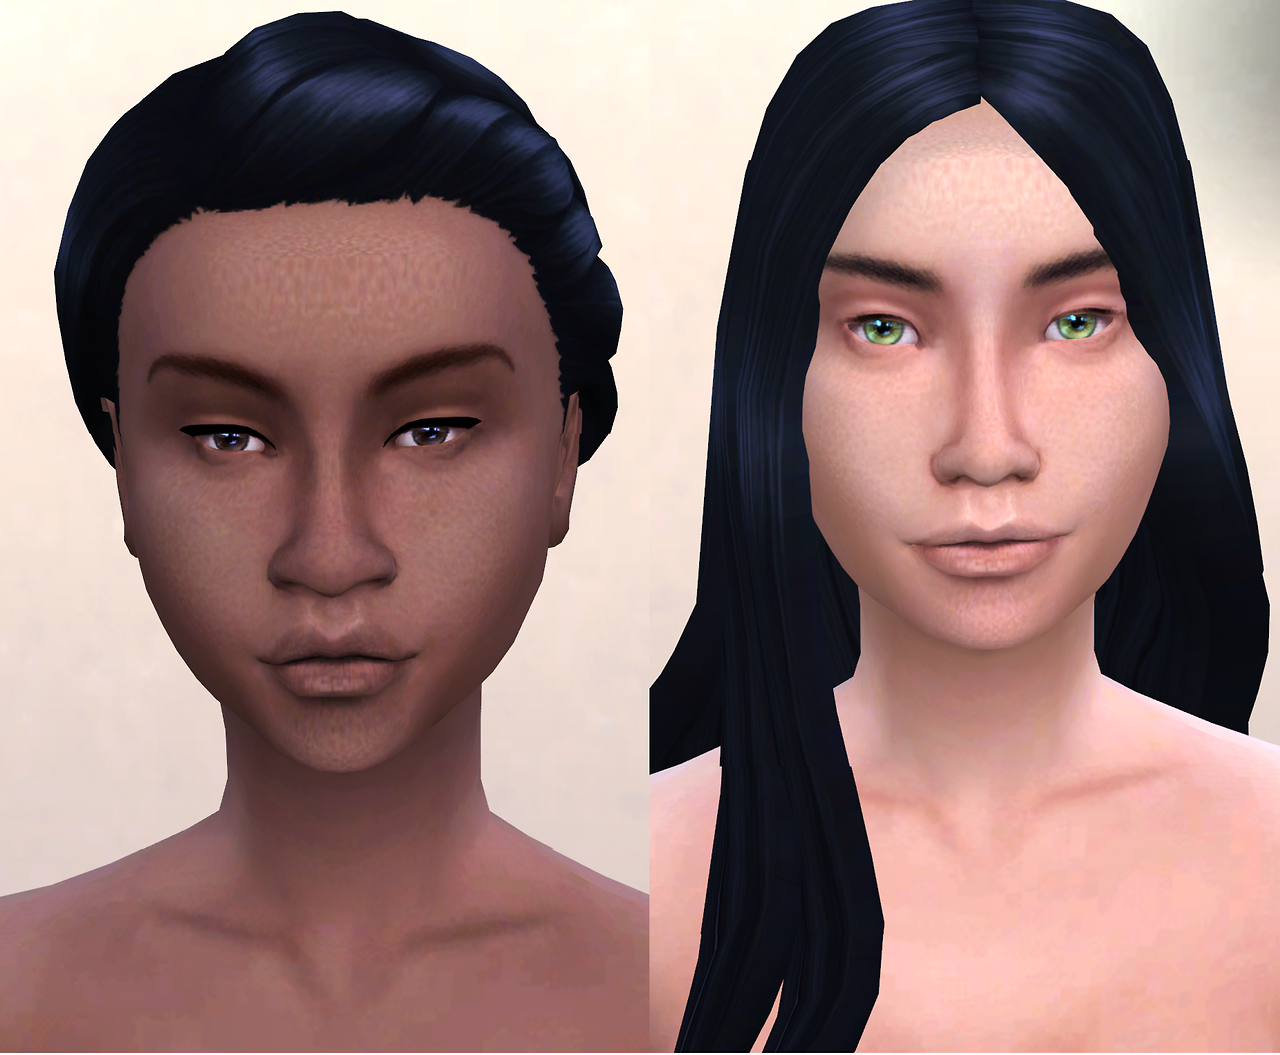 My Sims 4 Blog: Non-Default Skins and Default Tuning by Kijiko